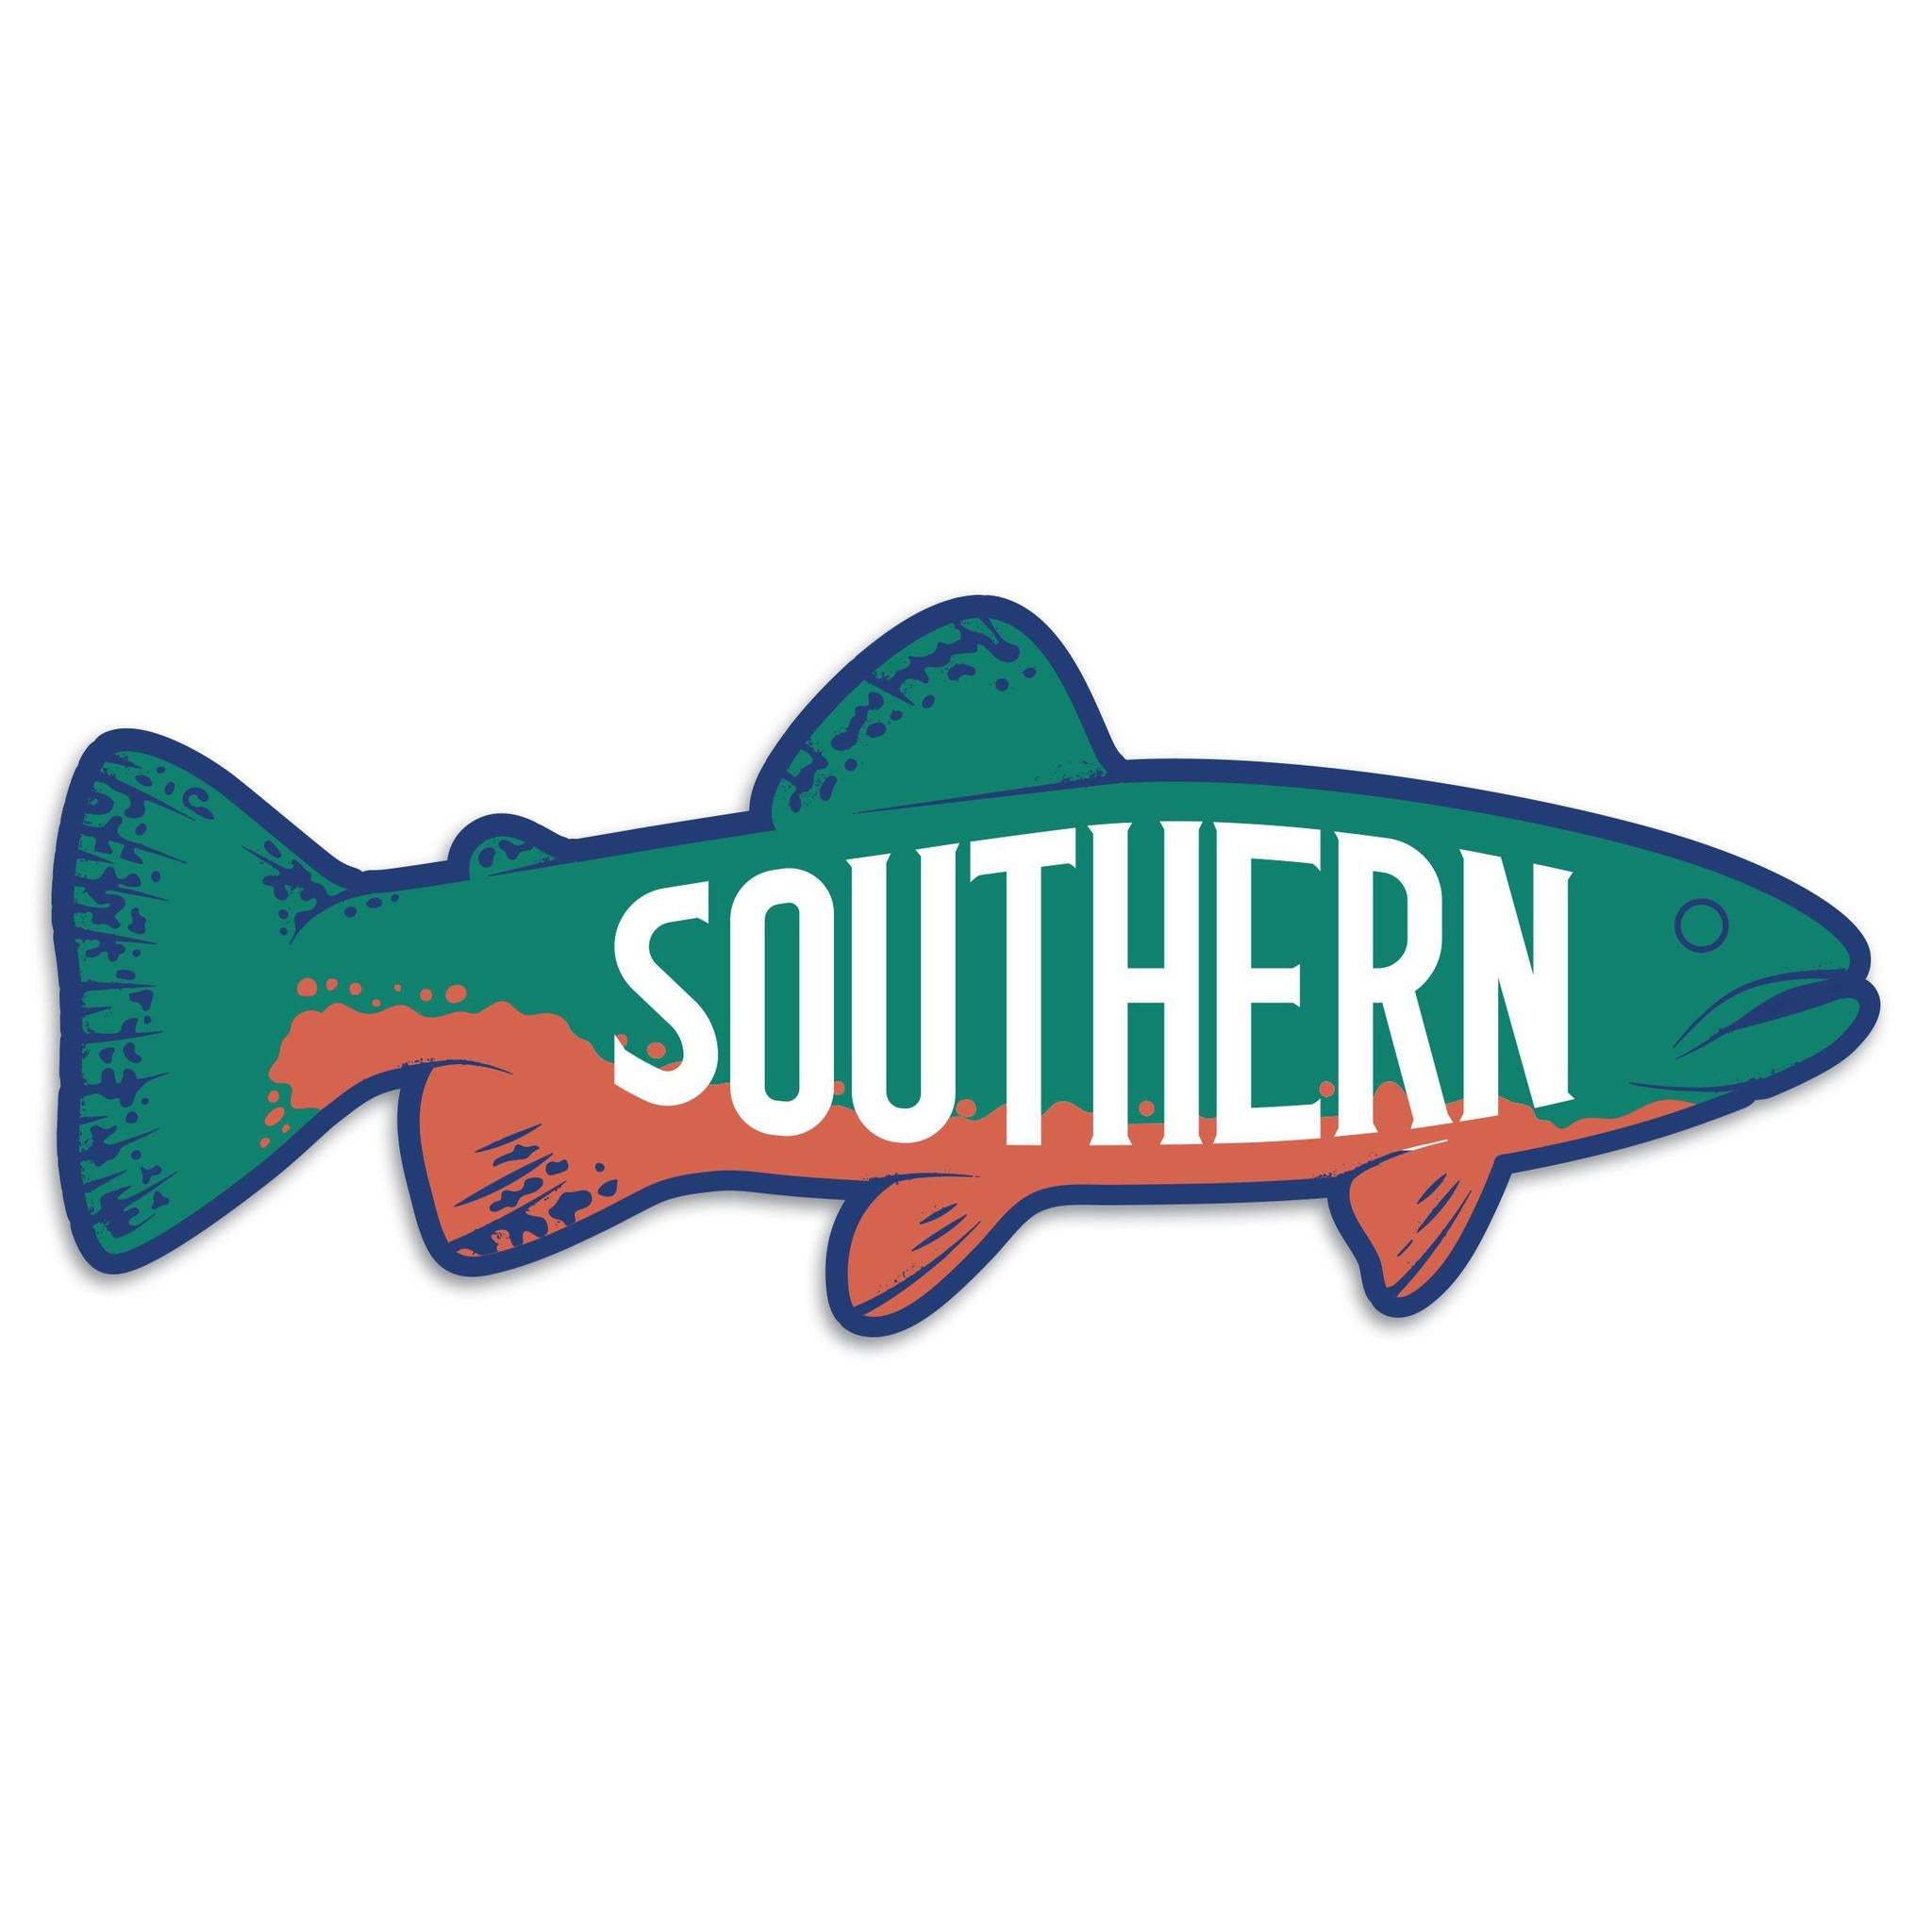 Southern Brook Sticker-Stickers-KY for KY Store